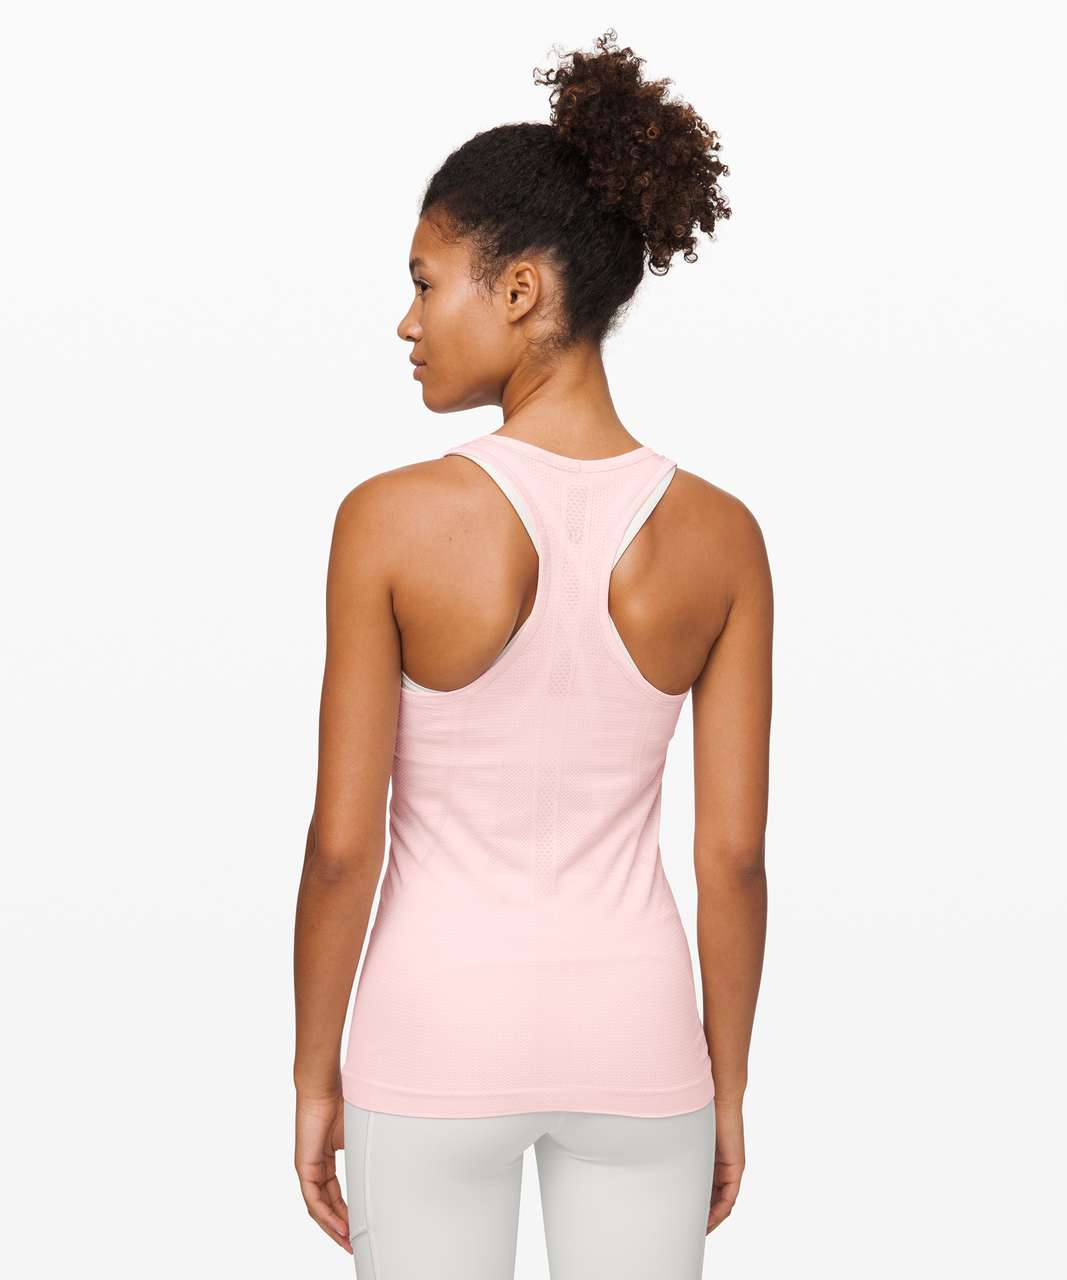 Lululemon Swiftly Tech Racerback - Powdered Rose / Powdered Rose